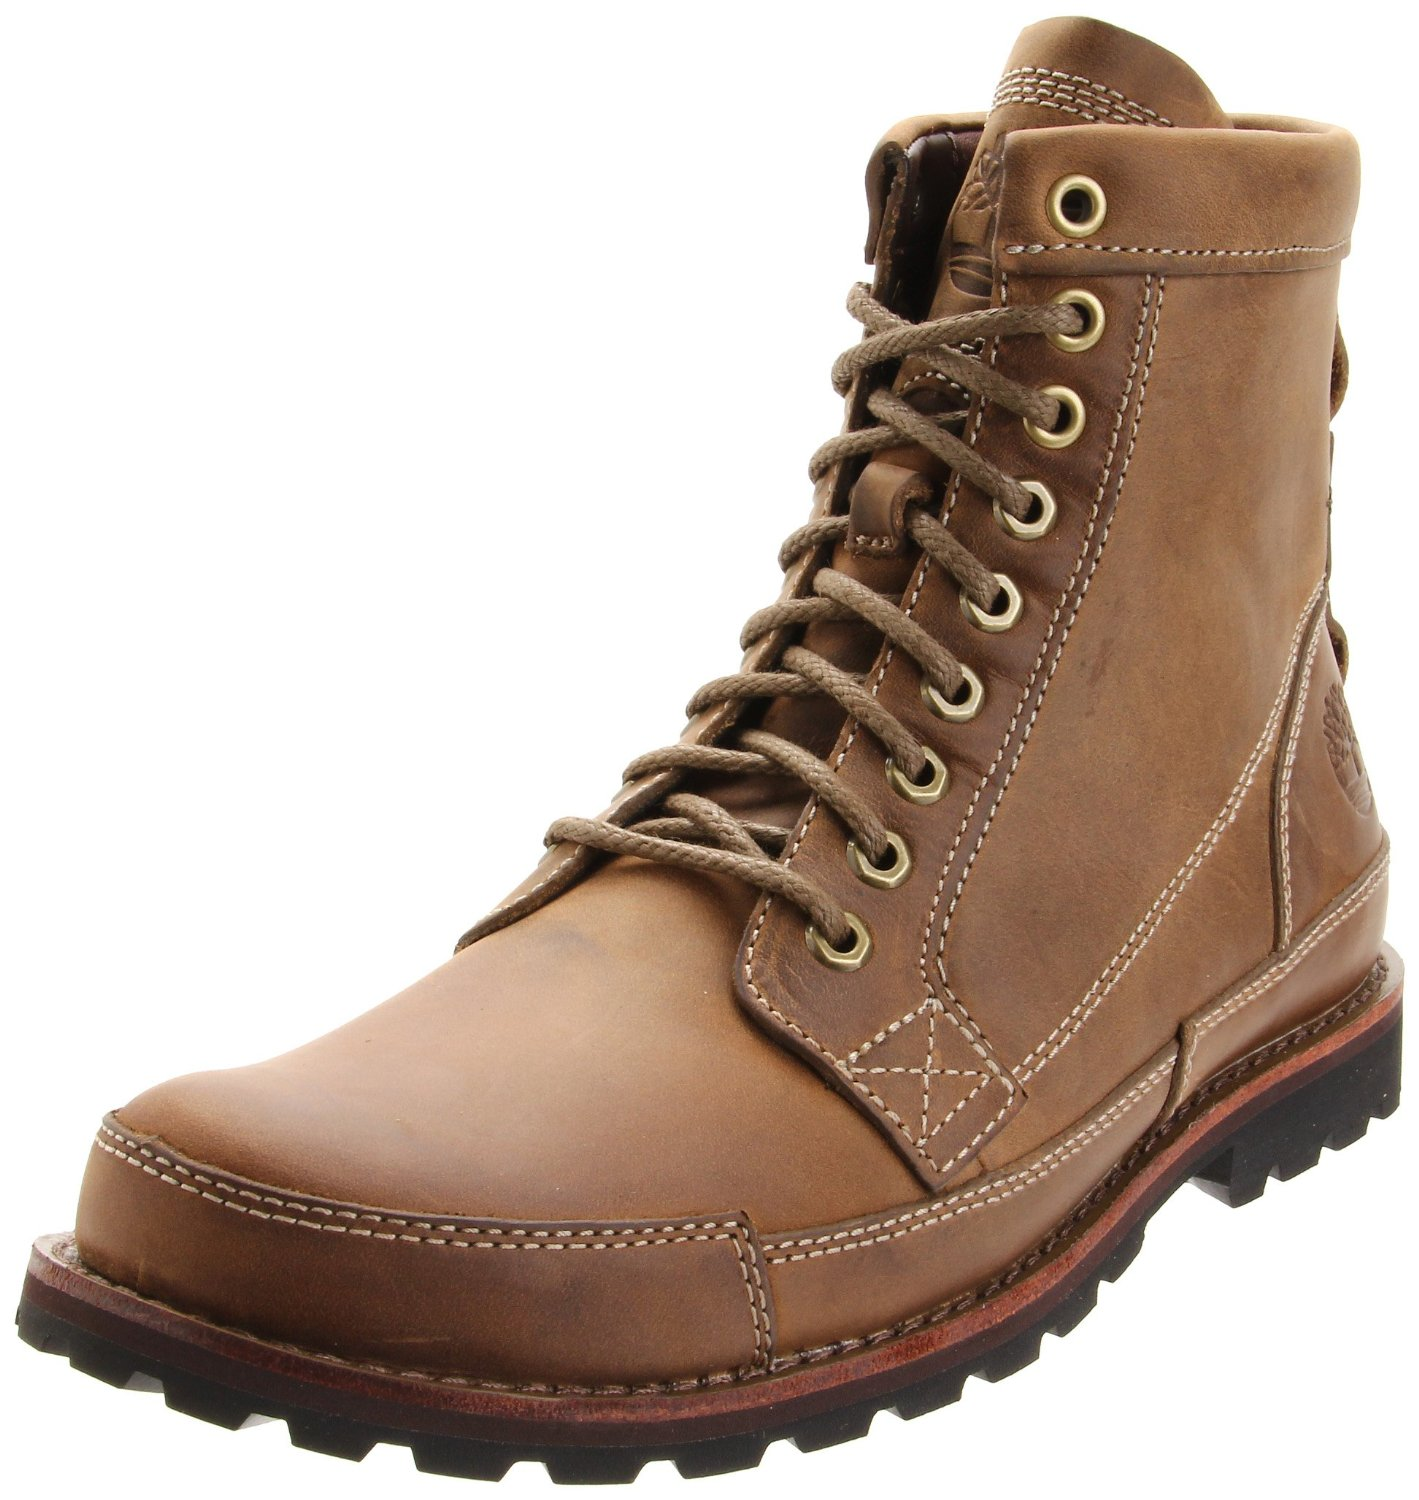 Timberland Boots For Men 2012